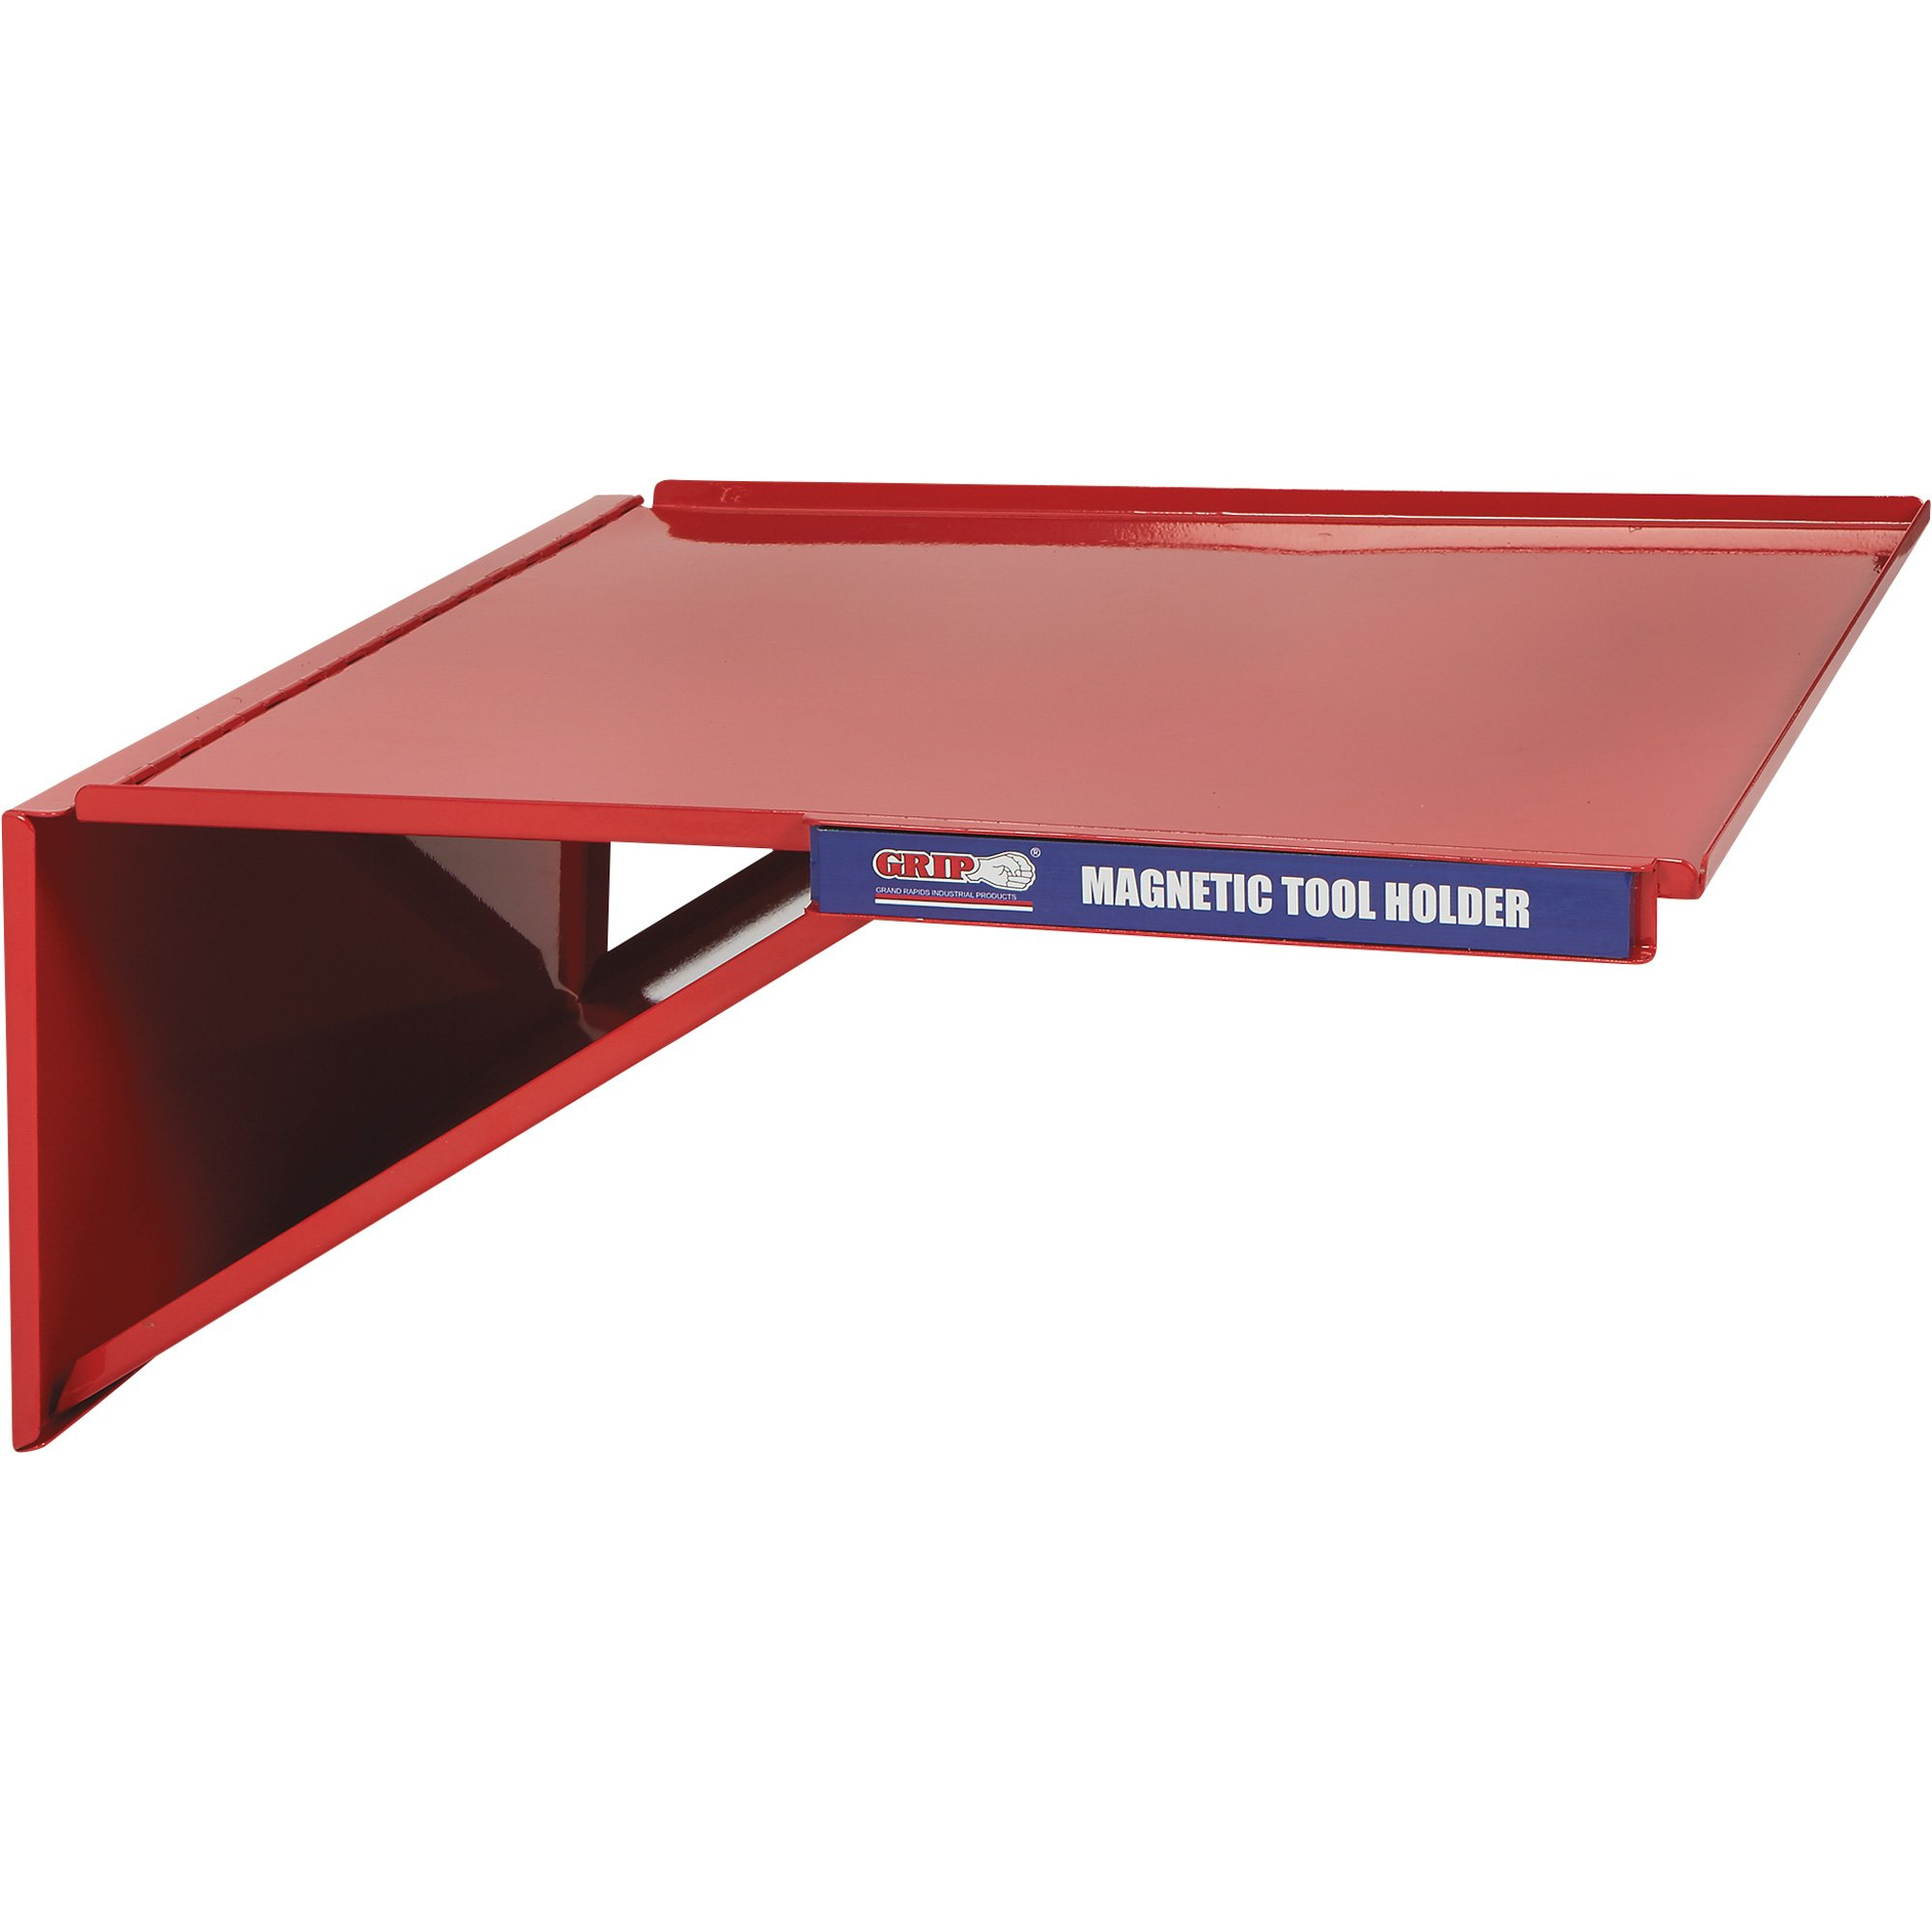 Grip Folding Toolbox Tray with Magnet - 18.25in.L x 16.85in.W x 7.5in.H, Model# 67479